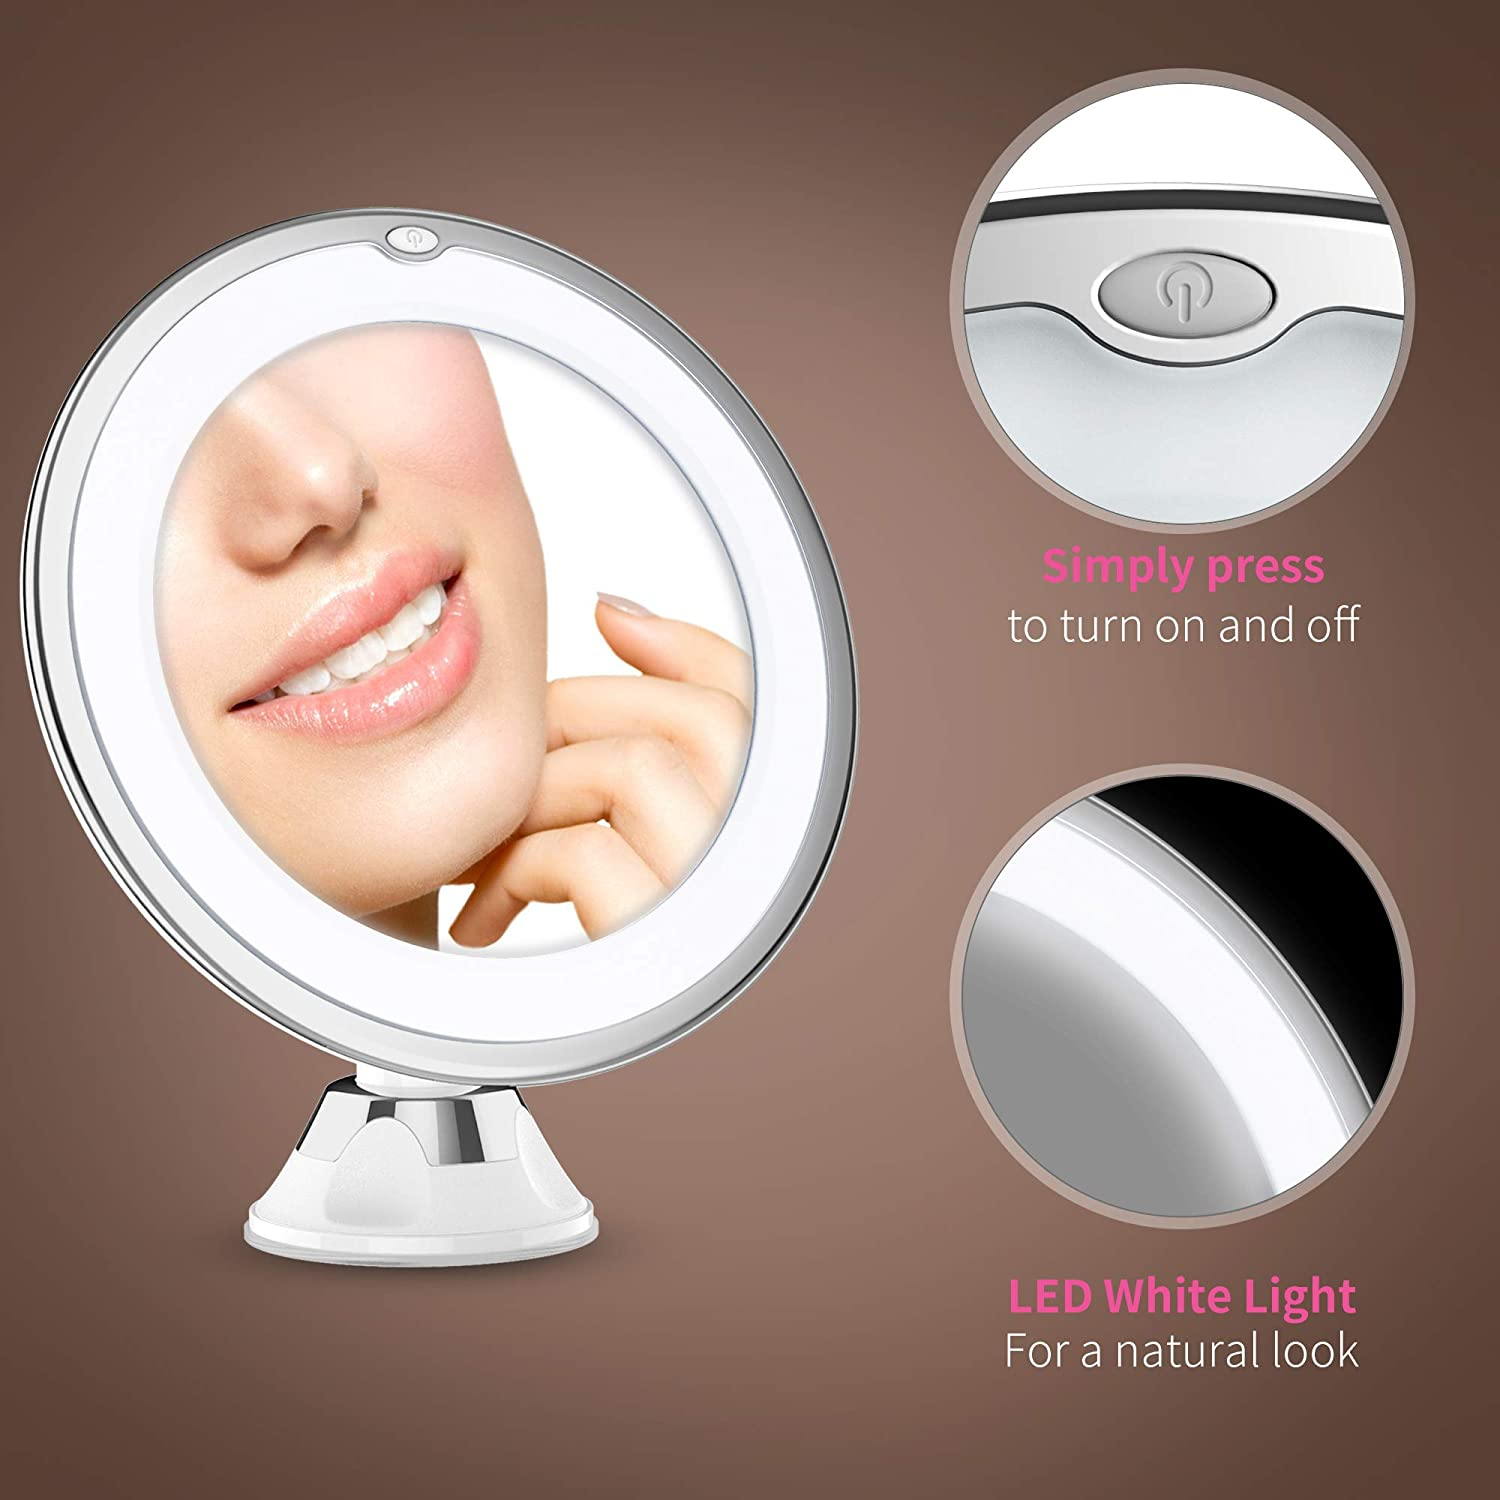 Updated 2020 Version 10X Magnifying Makeup Vanity Mirror with Lights, LED Lighted Portable Hand Cosmetic Magnification Light up Mirrors for Home Tabletop Bathroom Shower Travel